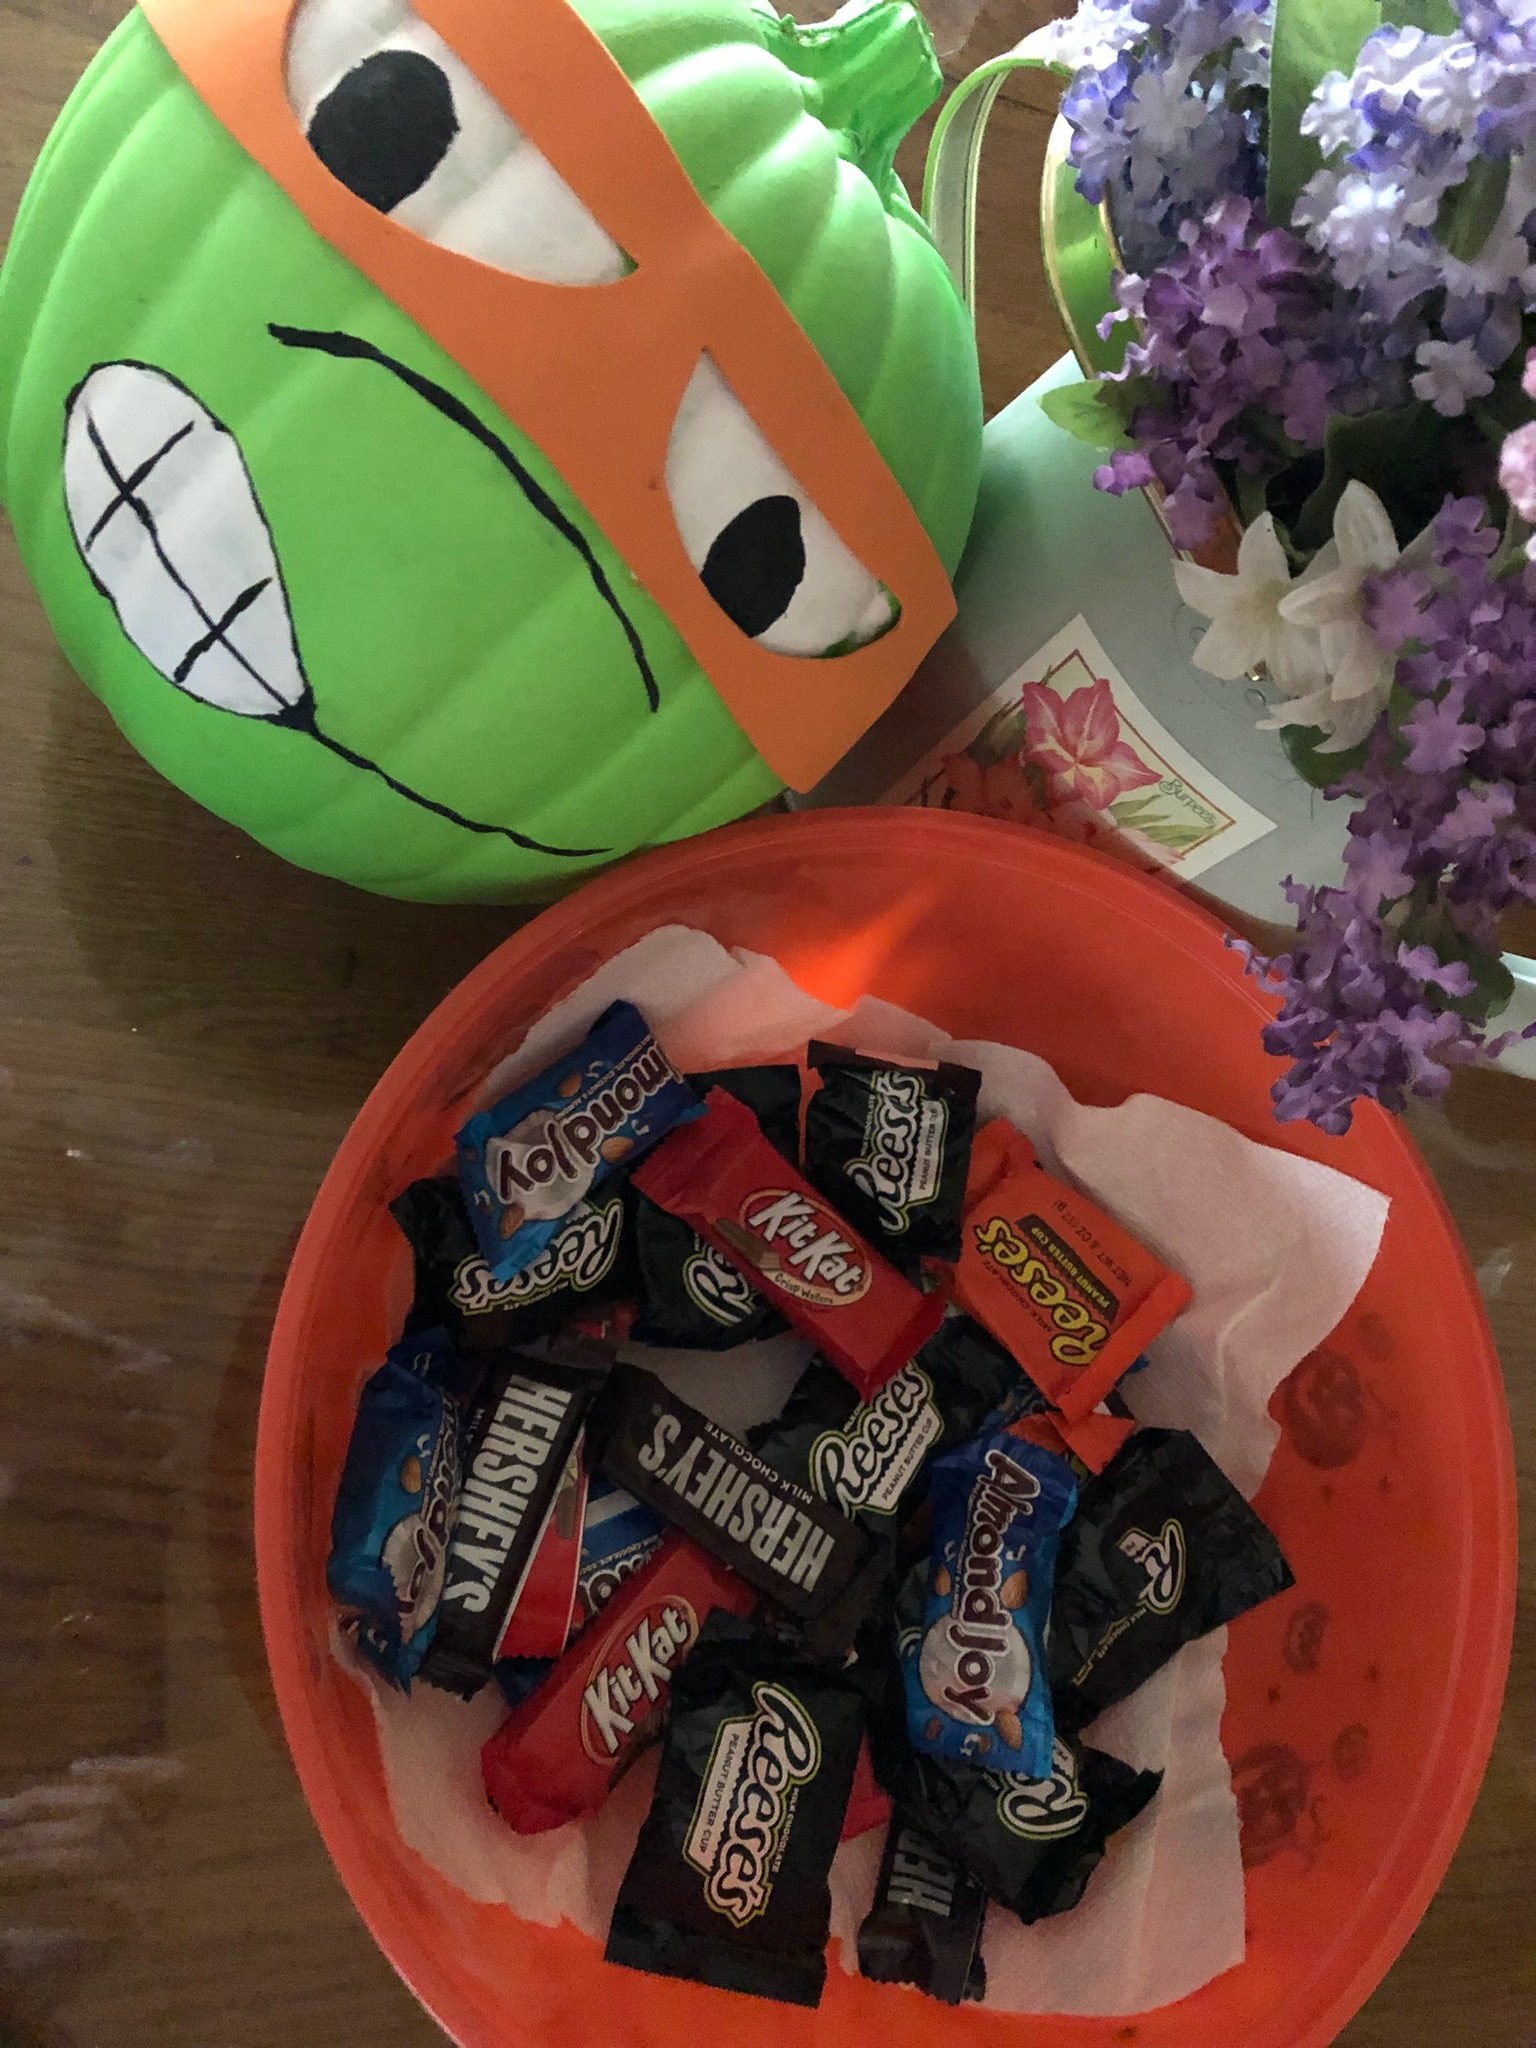 IMG_5199.jpg Halloween candy NAPS 2 B Fit October 2018